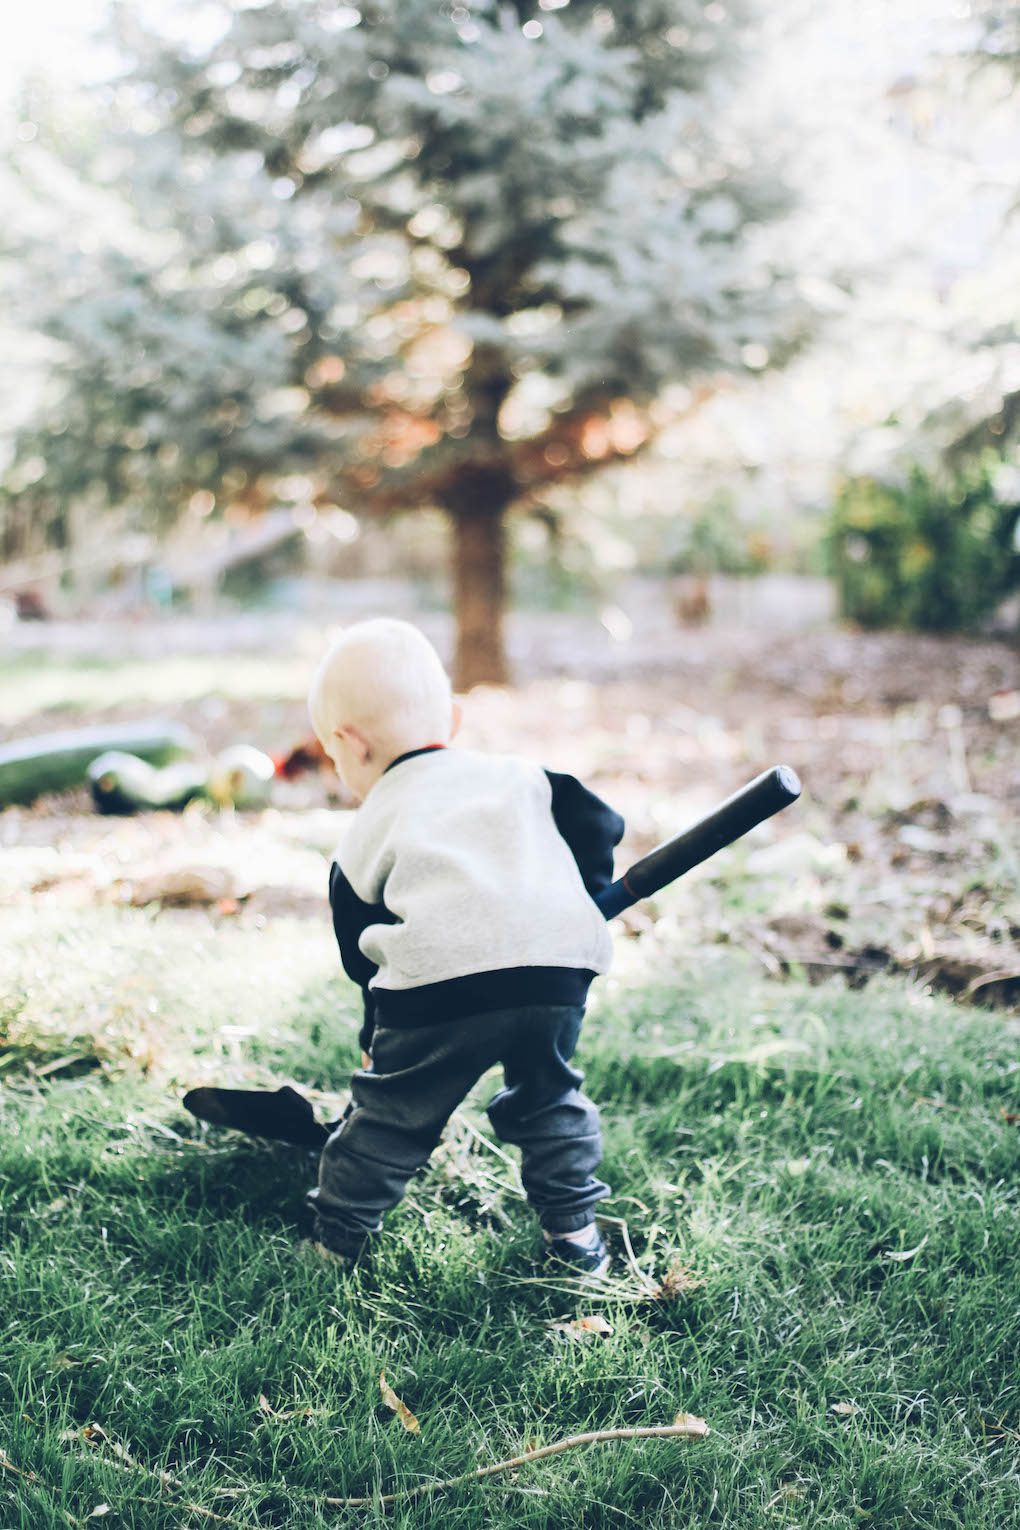 little boy working in the yard with a shovel and playing in the grass